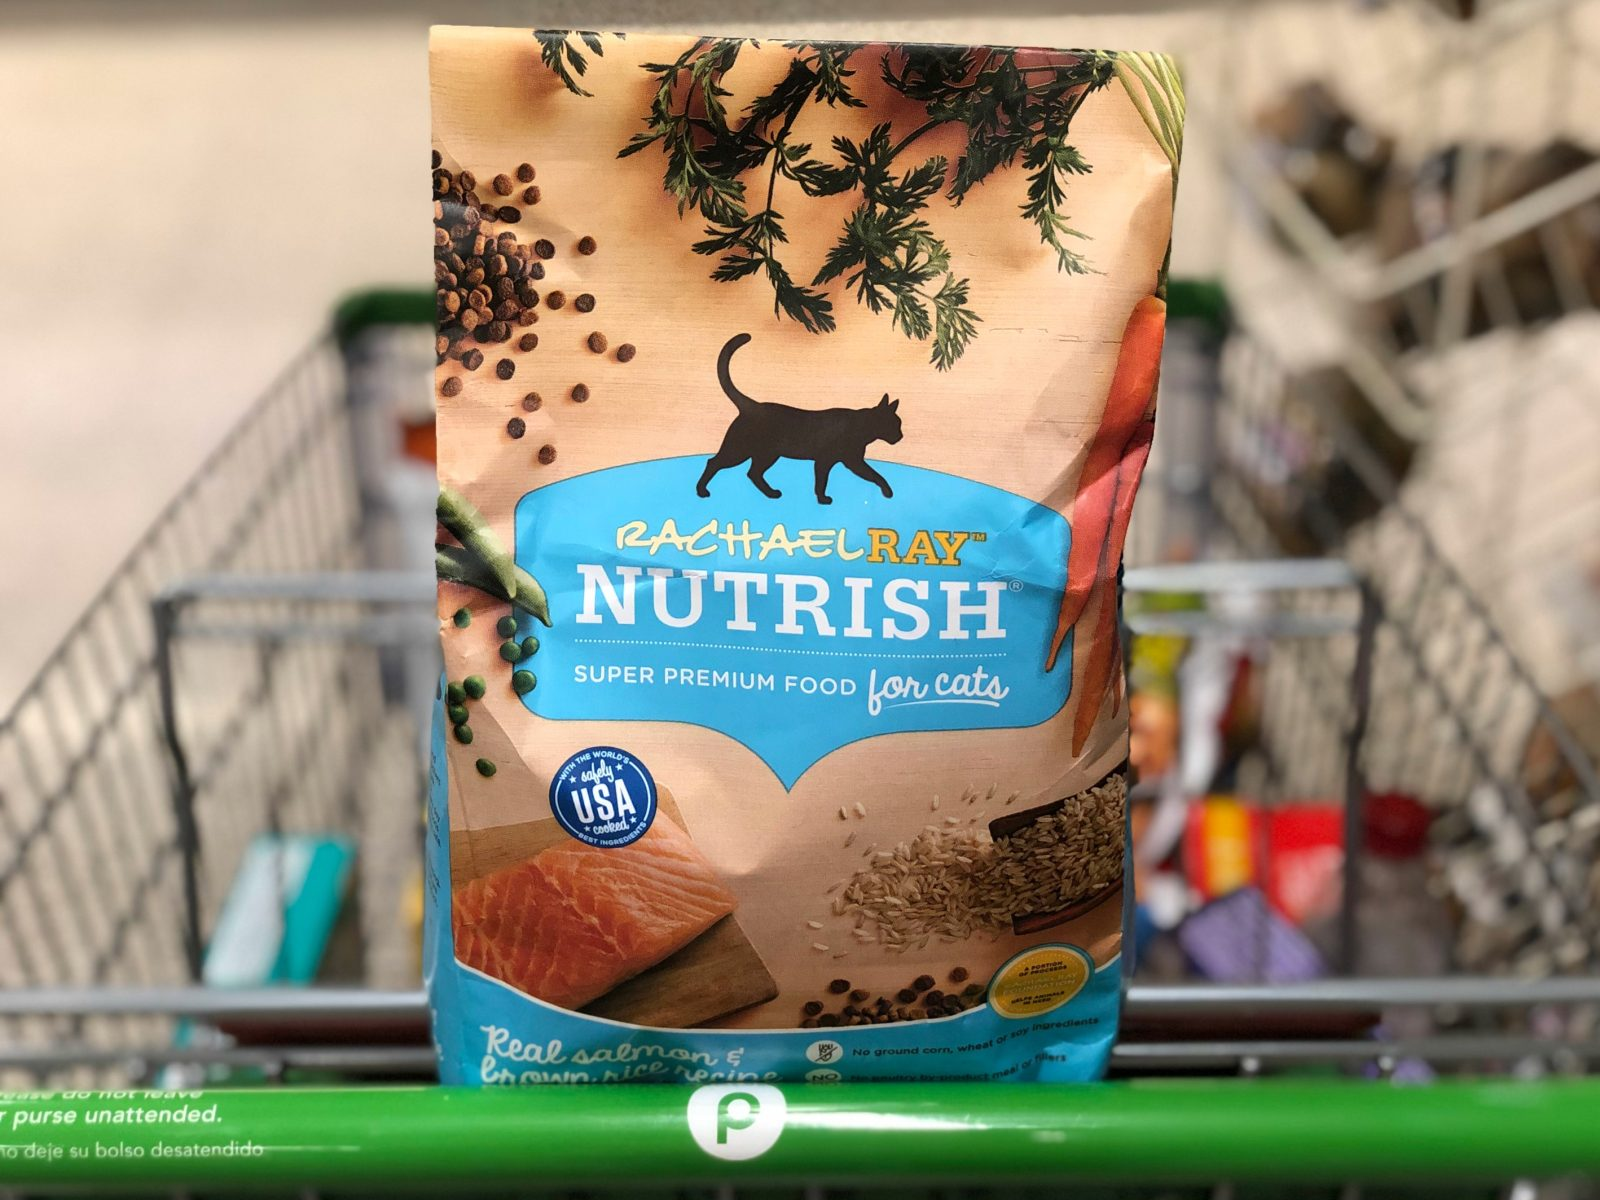 Rachael Ray Nutrish Dry Food For Cats Only $1.50 At Publix on I Heart Publix